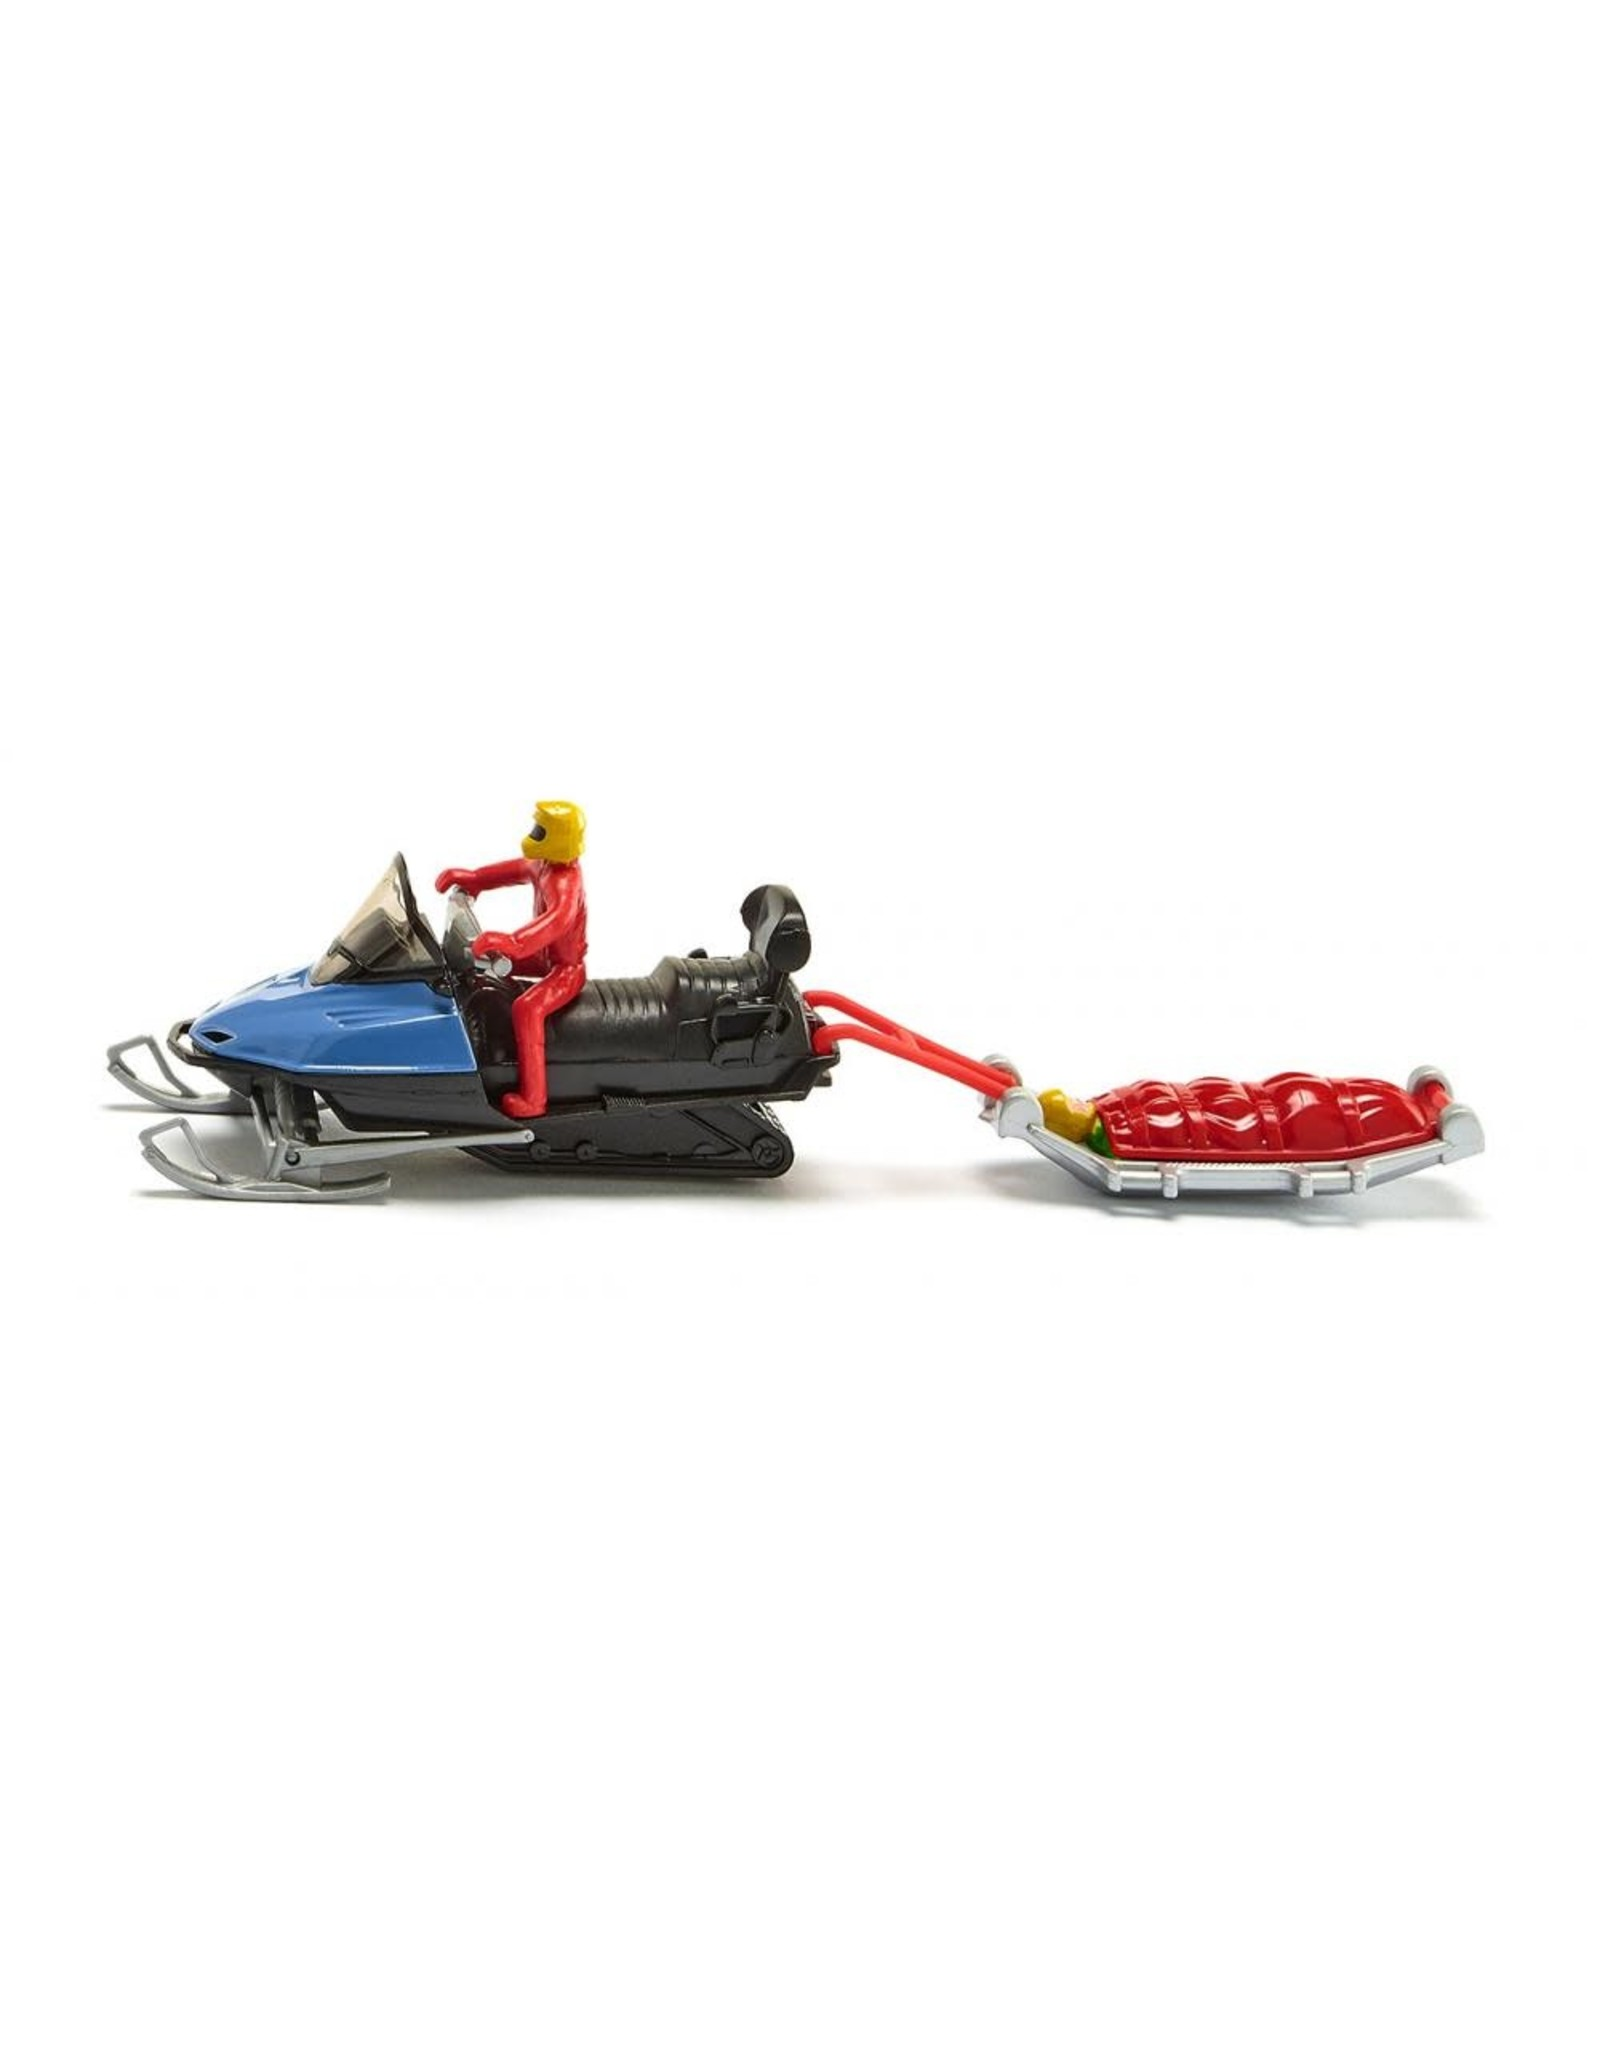 Siku Snowmobile with rescue sledge